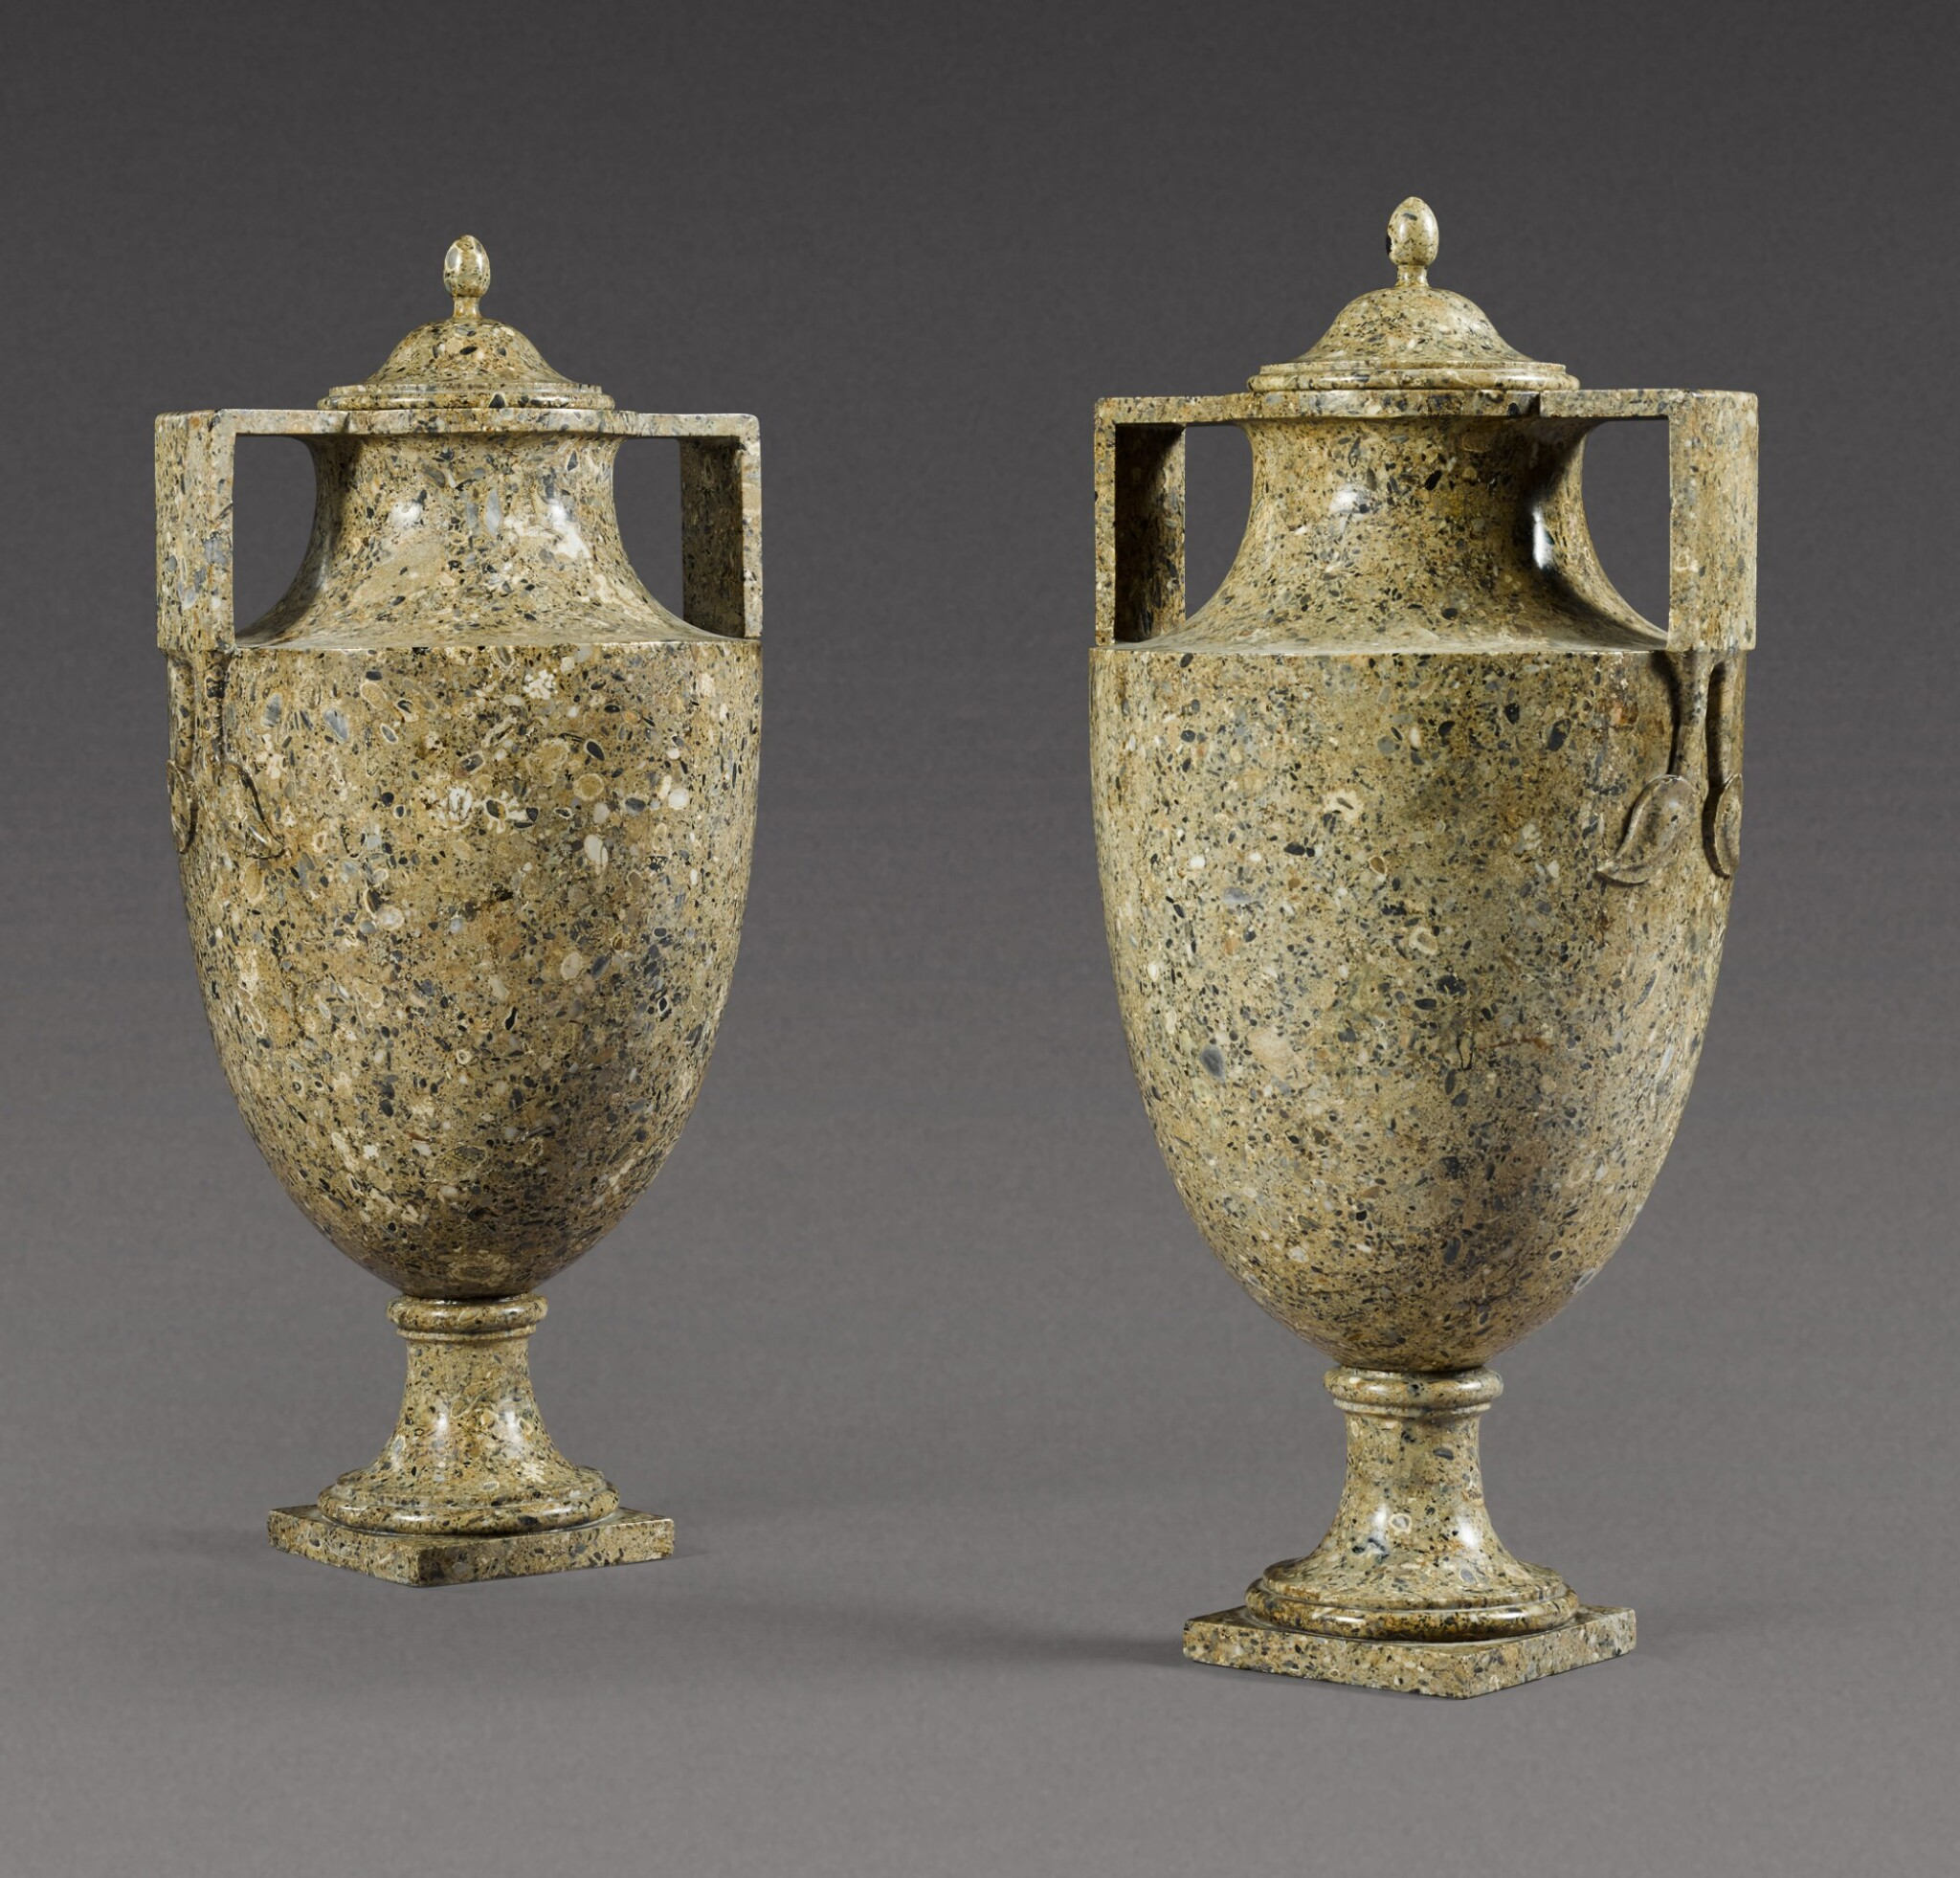 View 1 of Lot 166. A pair of Italian carved lumachella brecciata minuta vases, late 18th century.